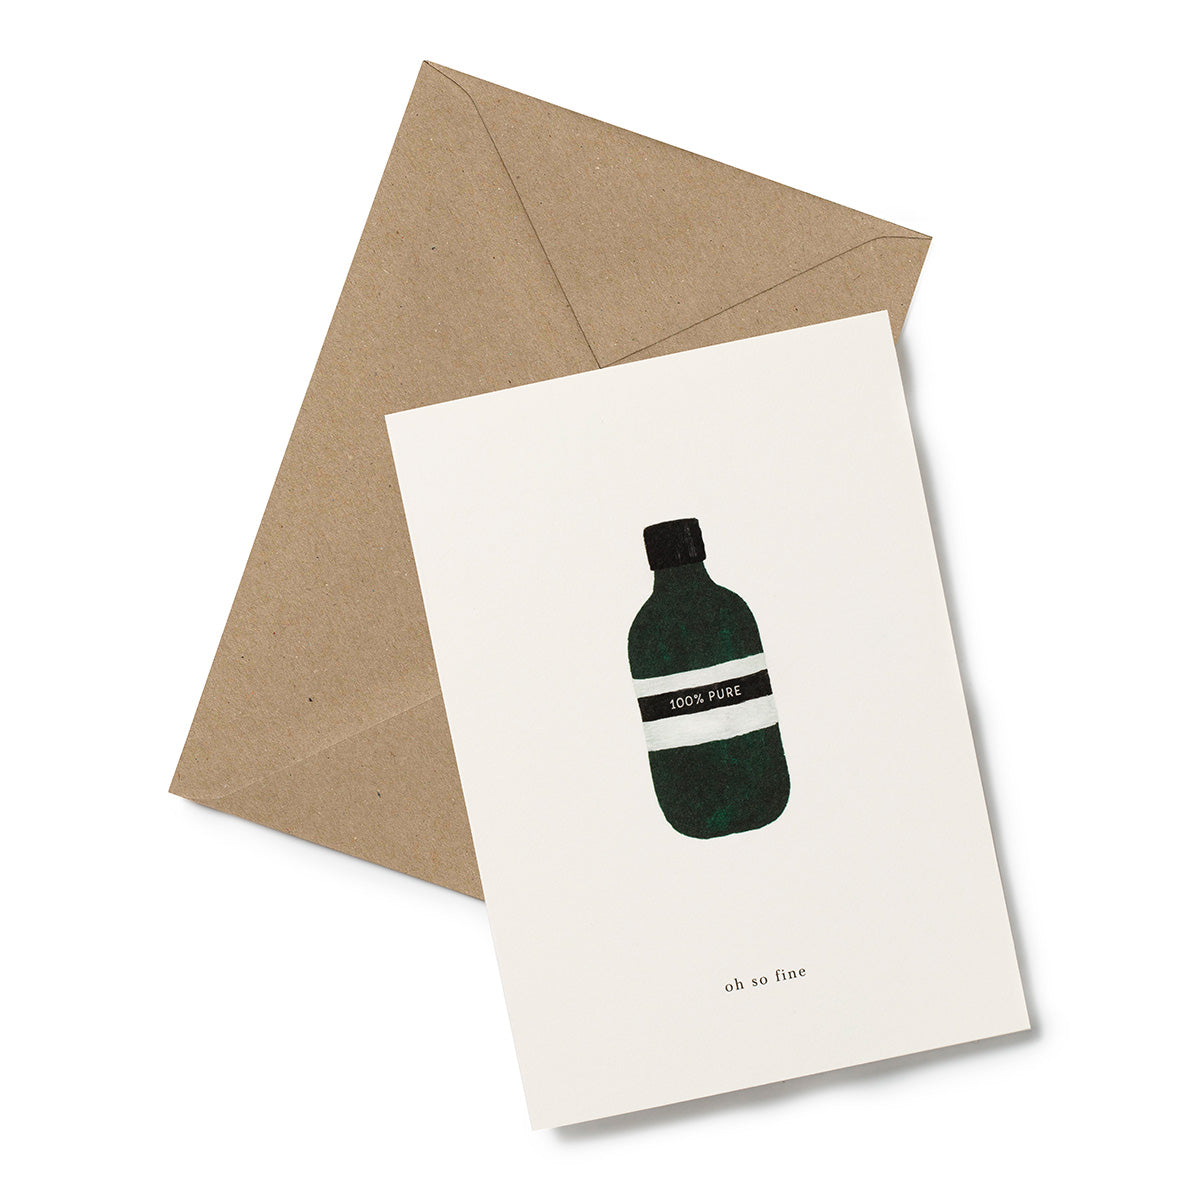 kartotek-copenhagen---stationery---paper-goods---cards---danish-design---shop-small---pure.jpg